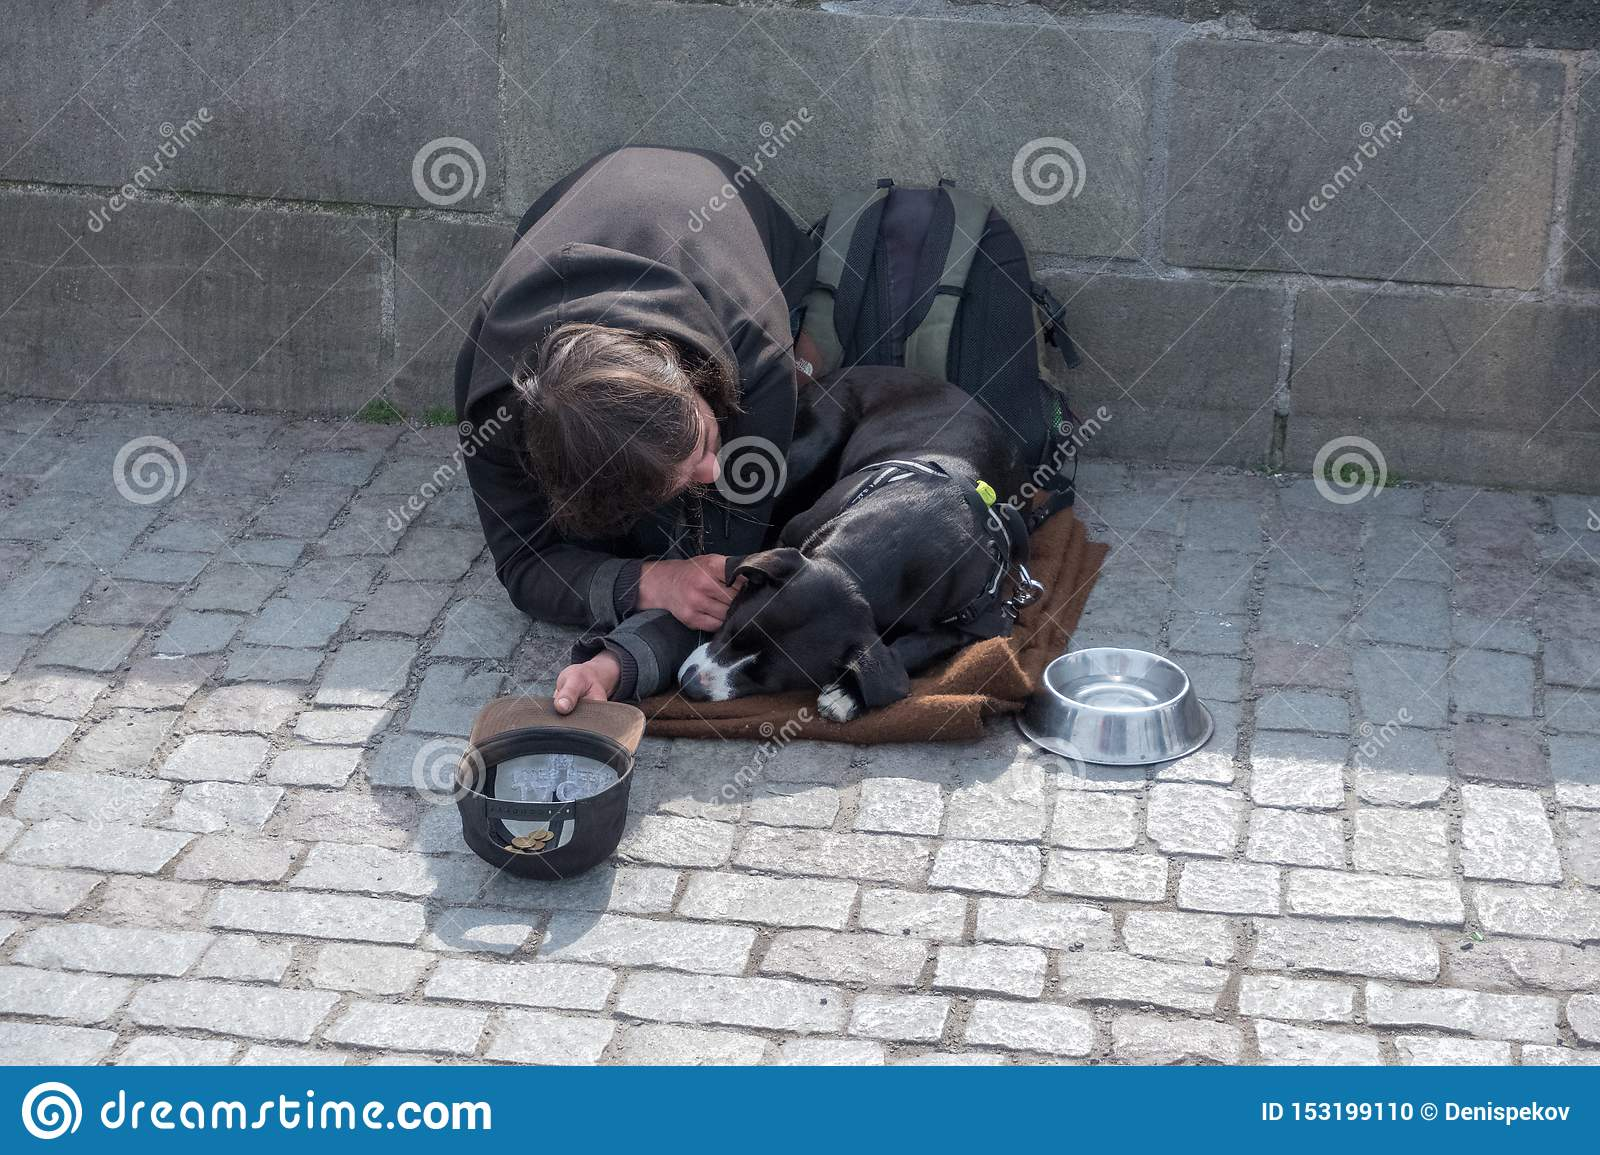 Beggar, homeless with Dog near Charles Bridge, Prague, Czech republic